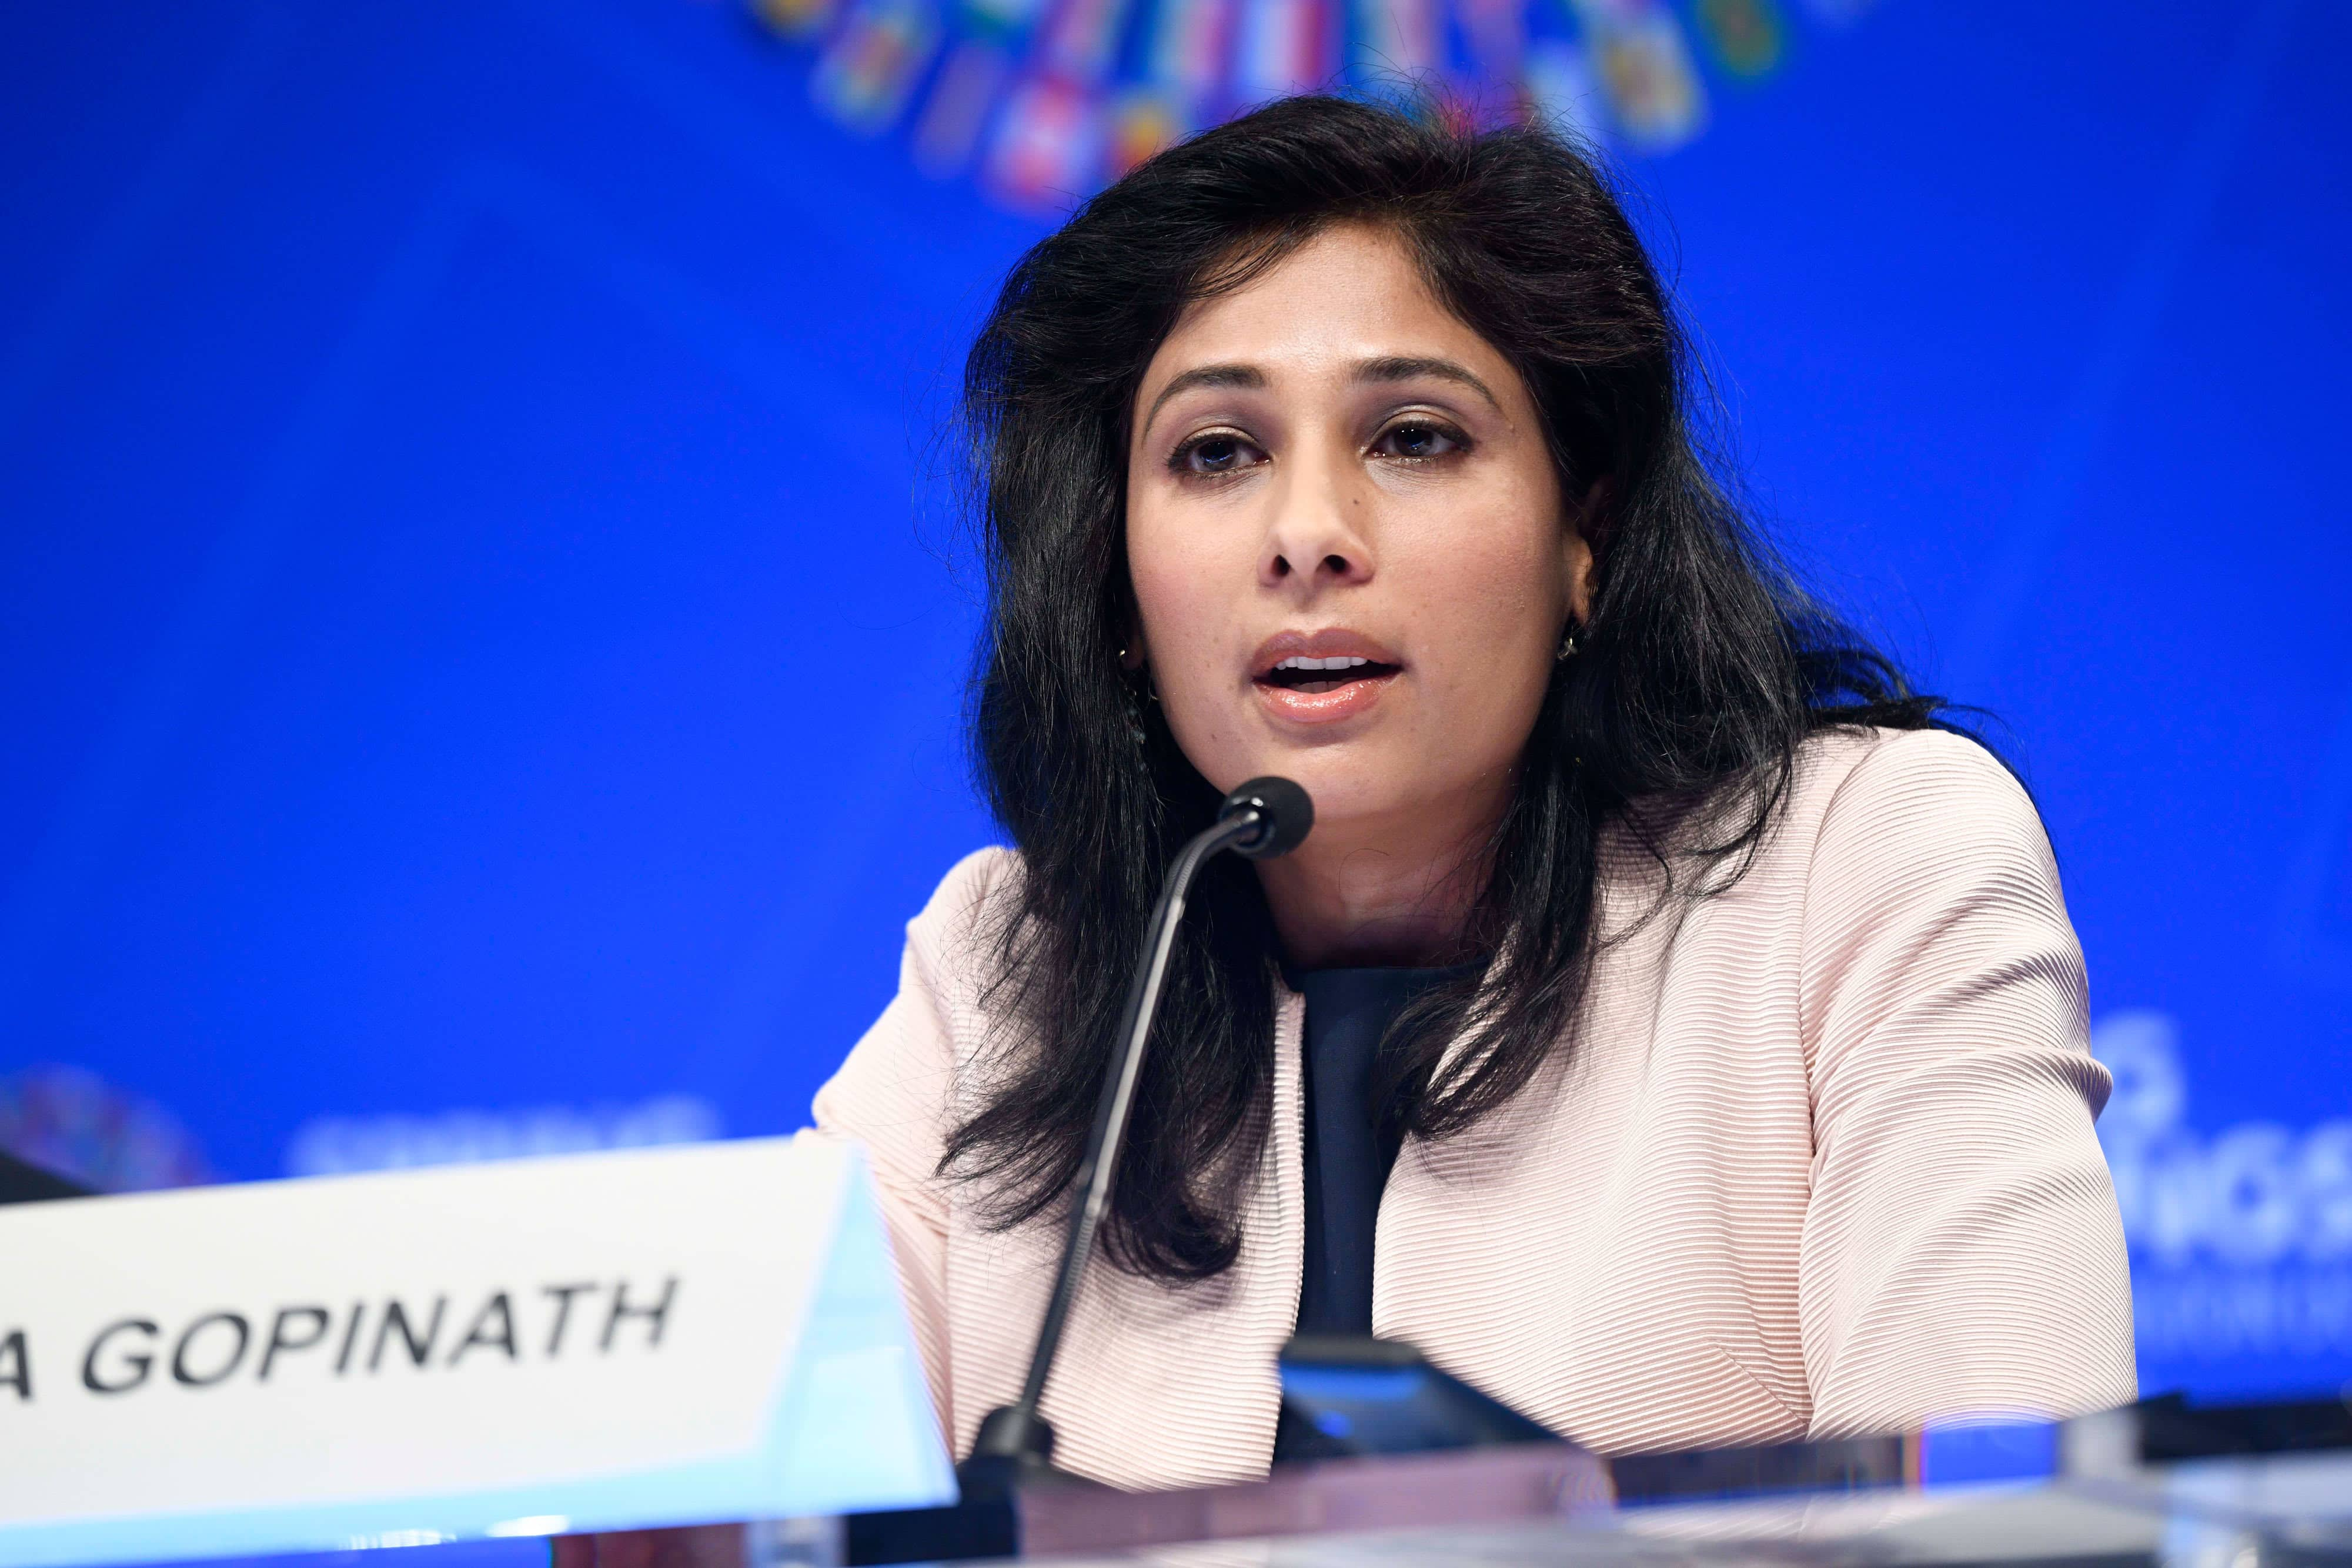 India's GDP shrunk the most among G-20 countries: IMF Chief Economist Gita Gopinath